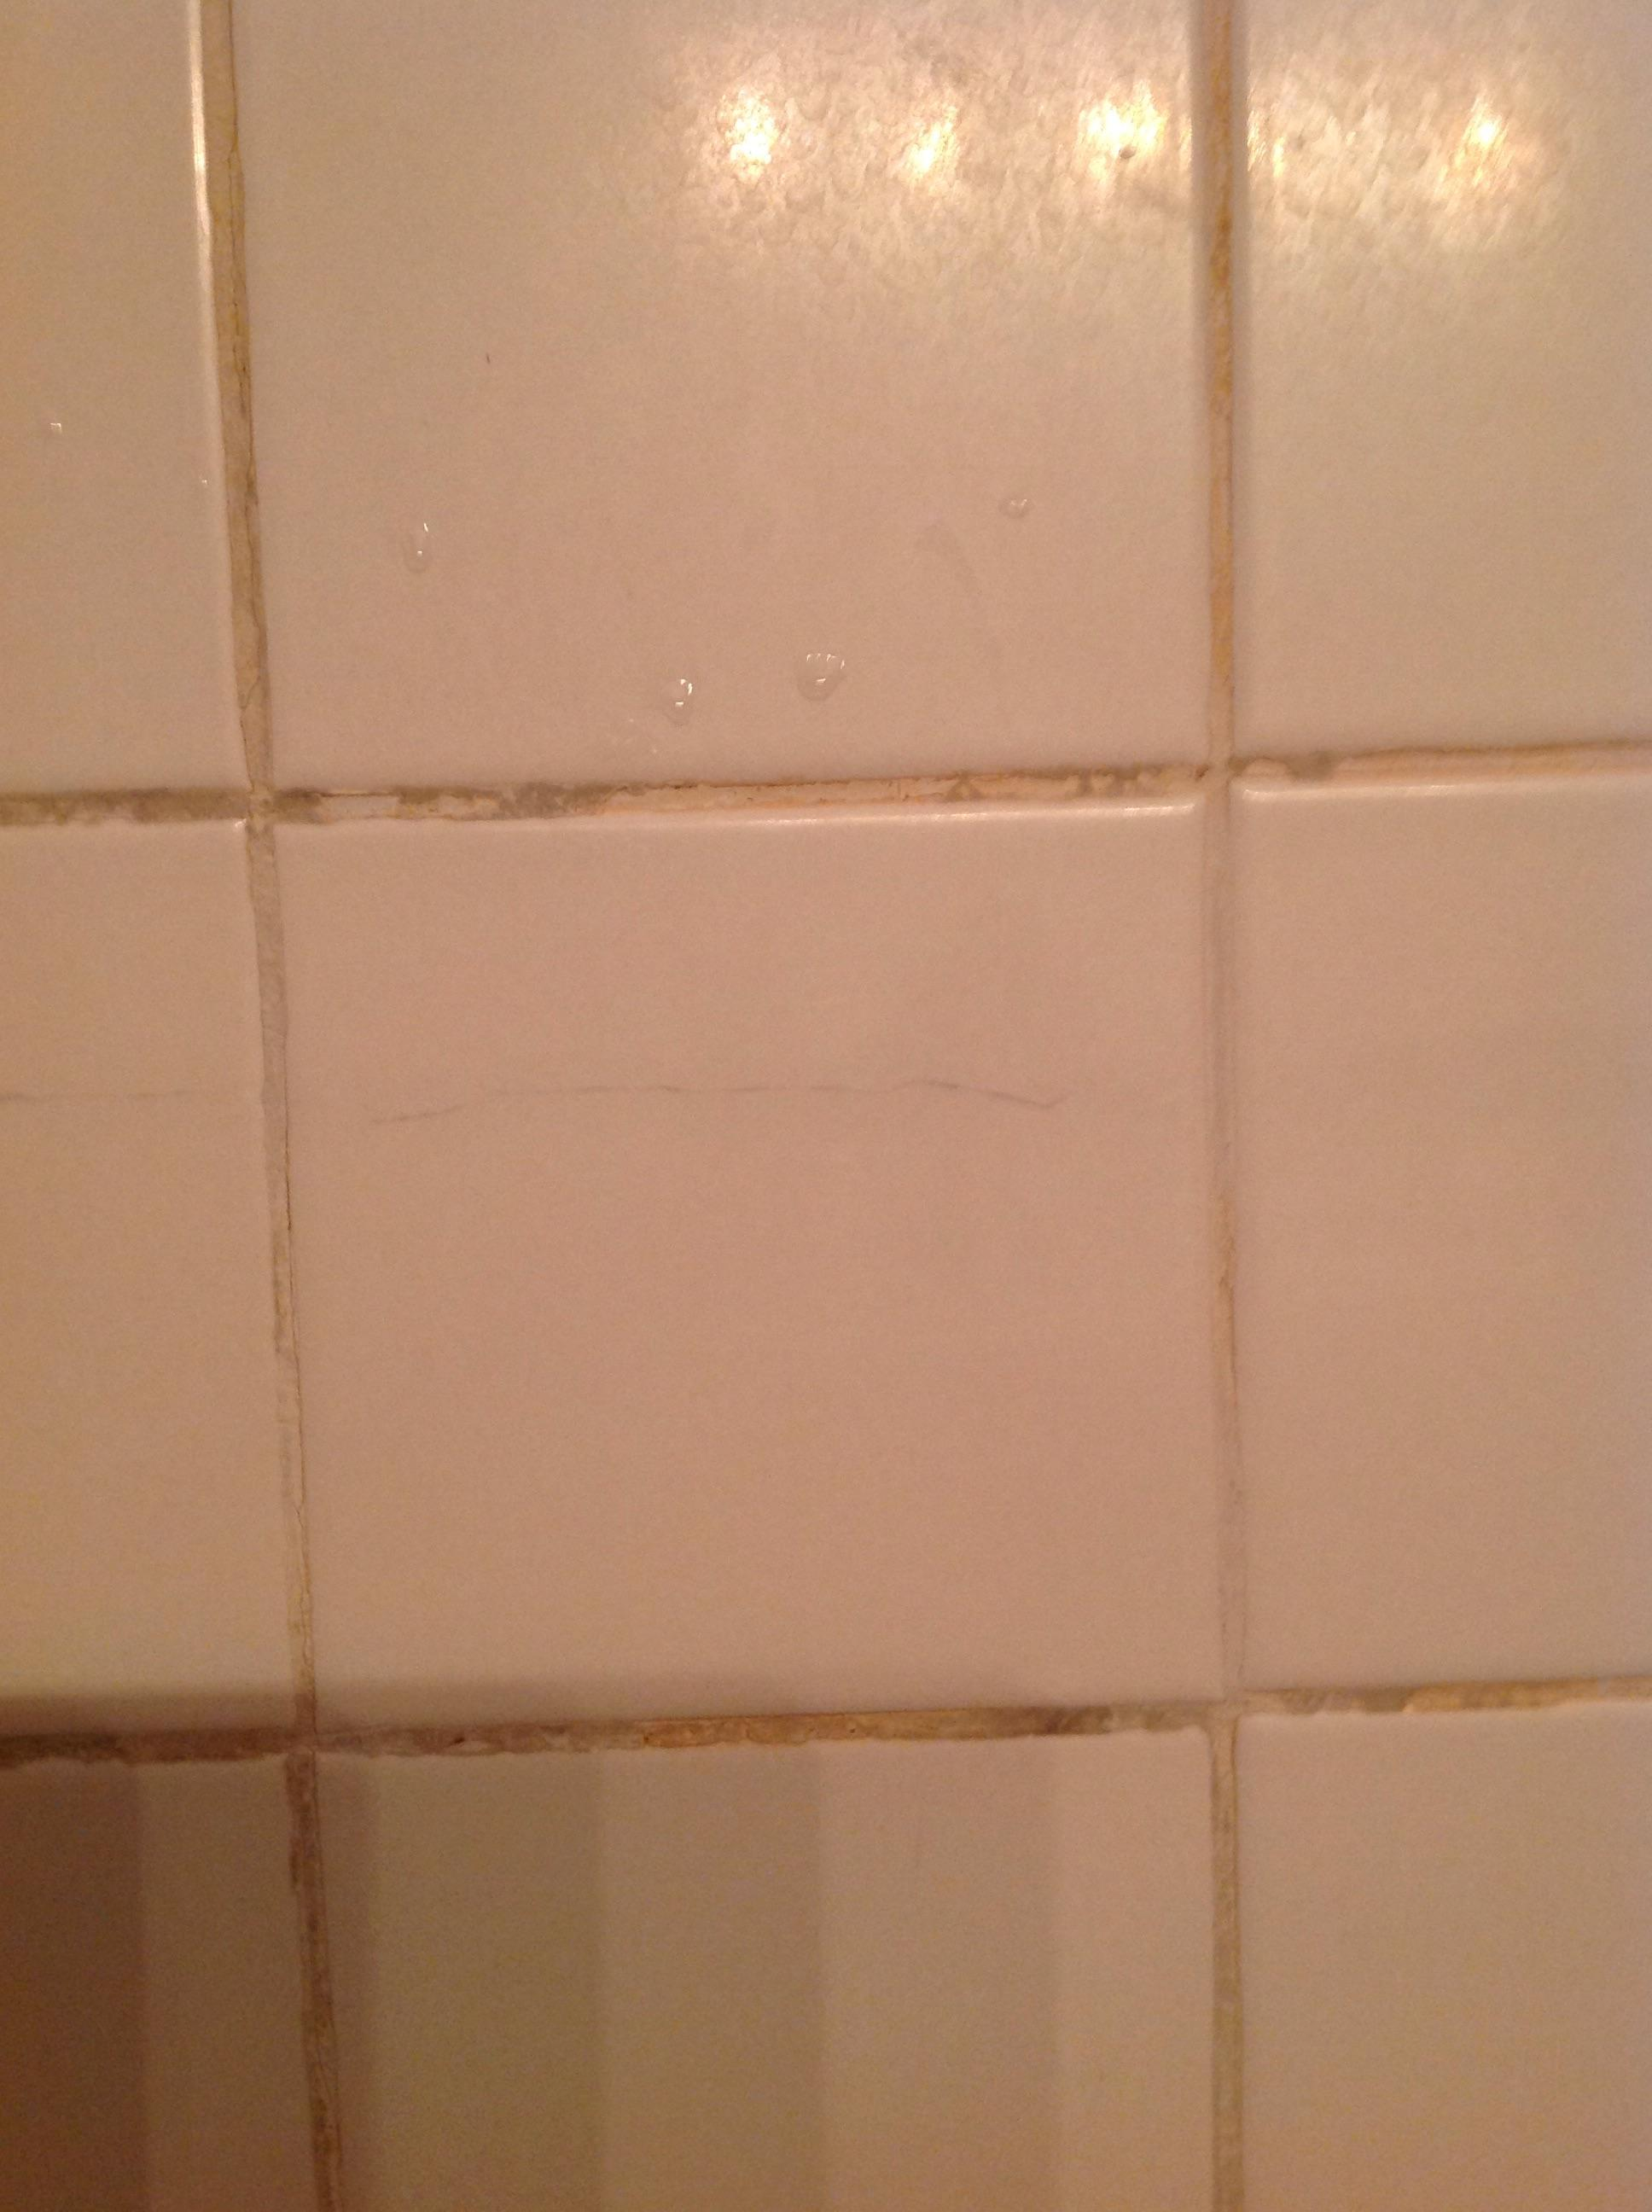 repair  Cracked bathroom tile  runs almost entire length